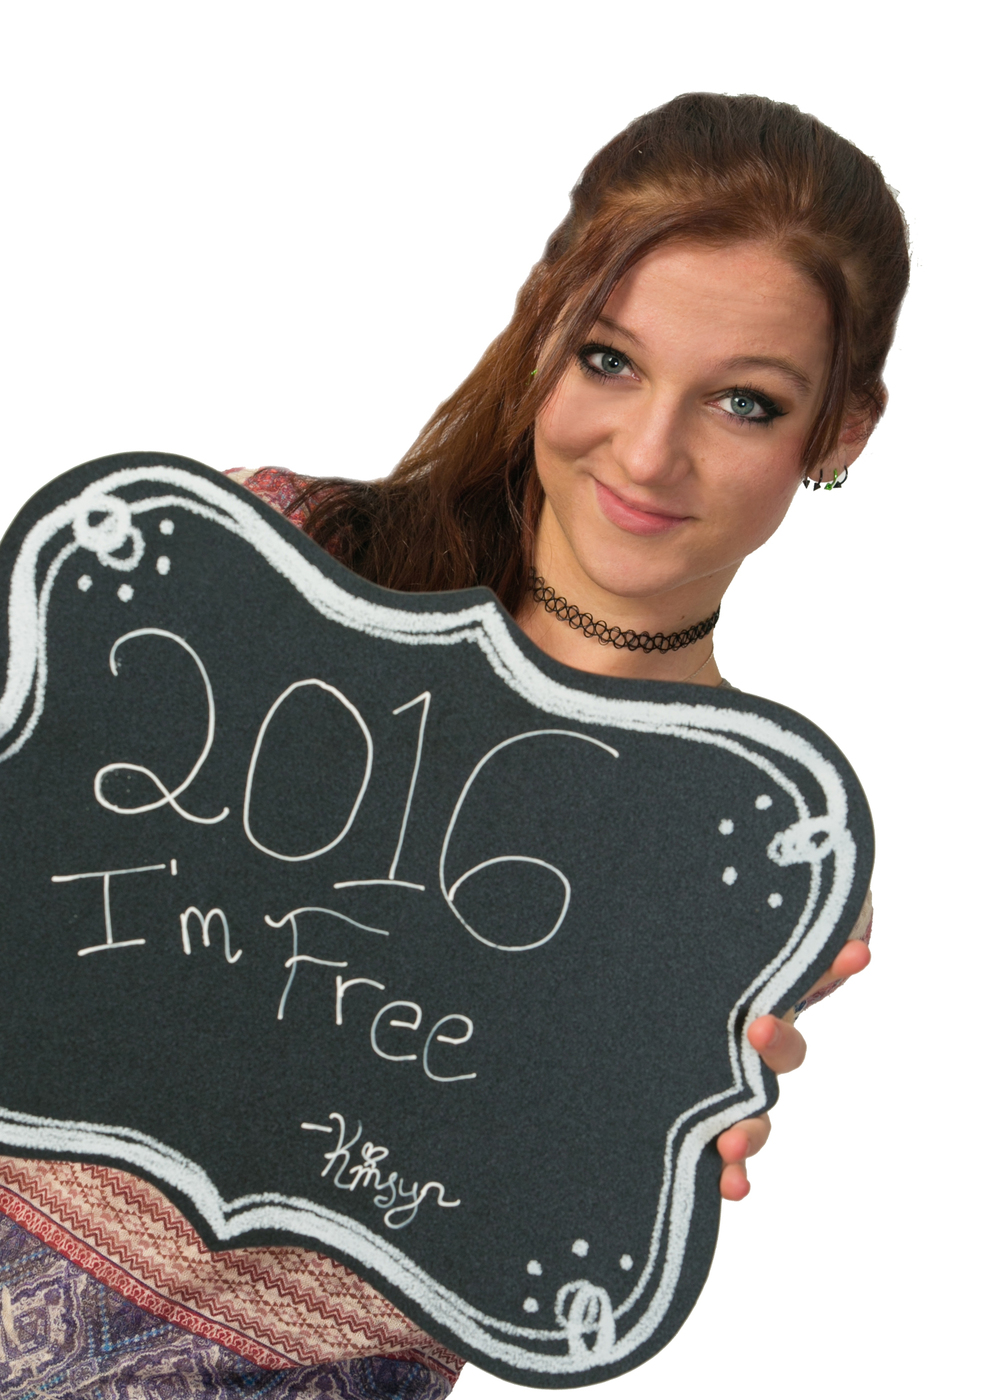 2016_senior_thankyoucard.jpg